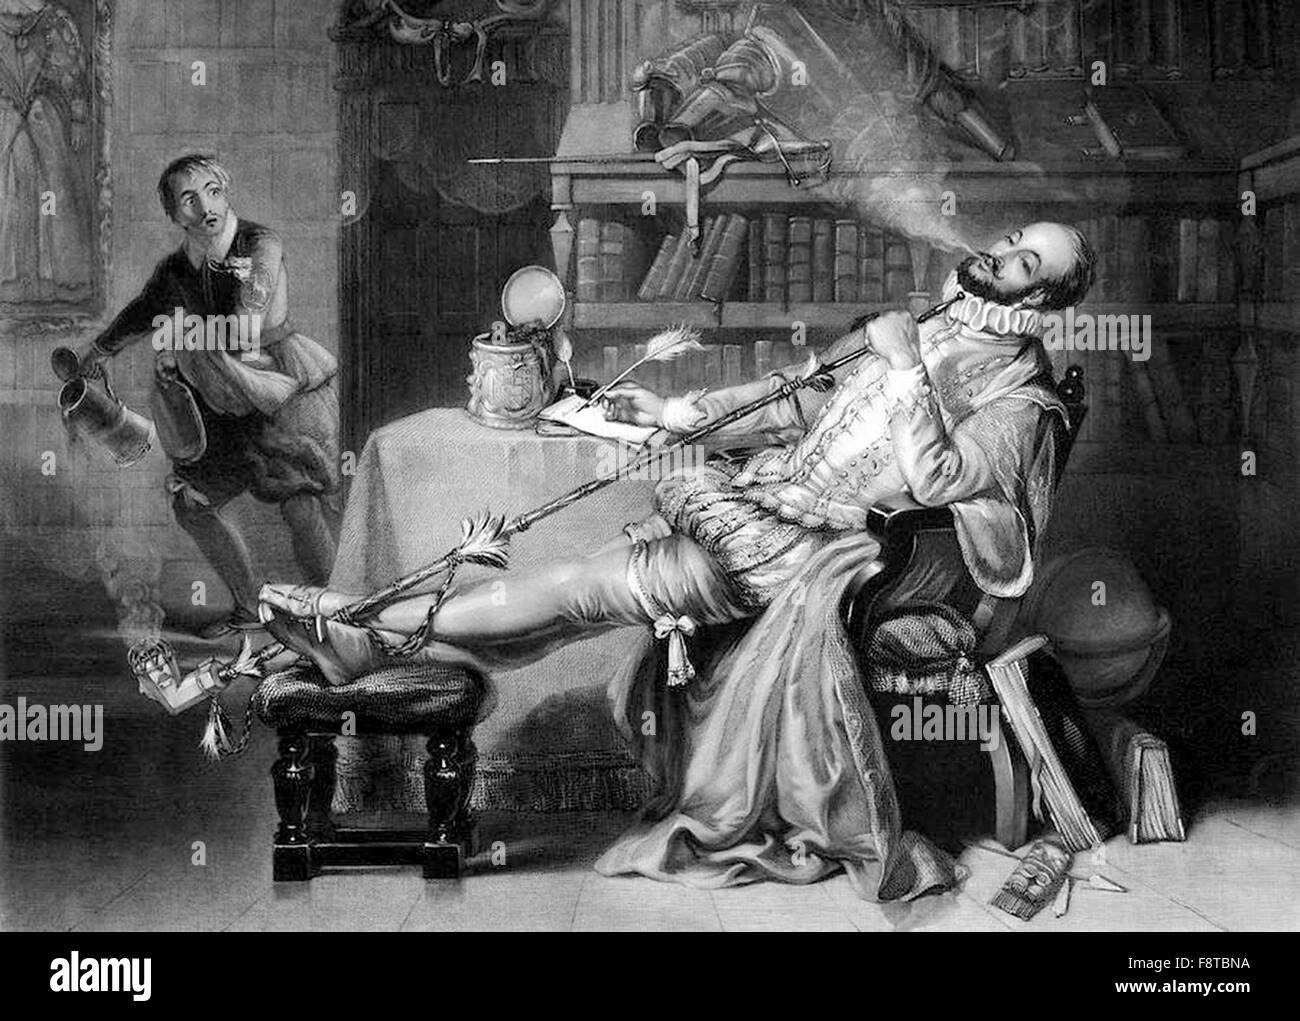 Sir Walter Raleigh smoking tobacco from a Pipe in England - Stock Image